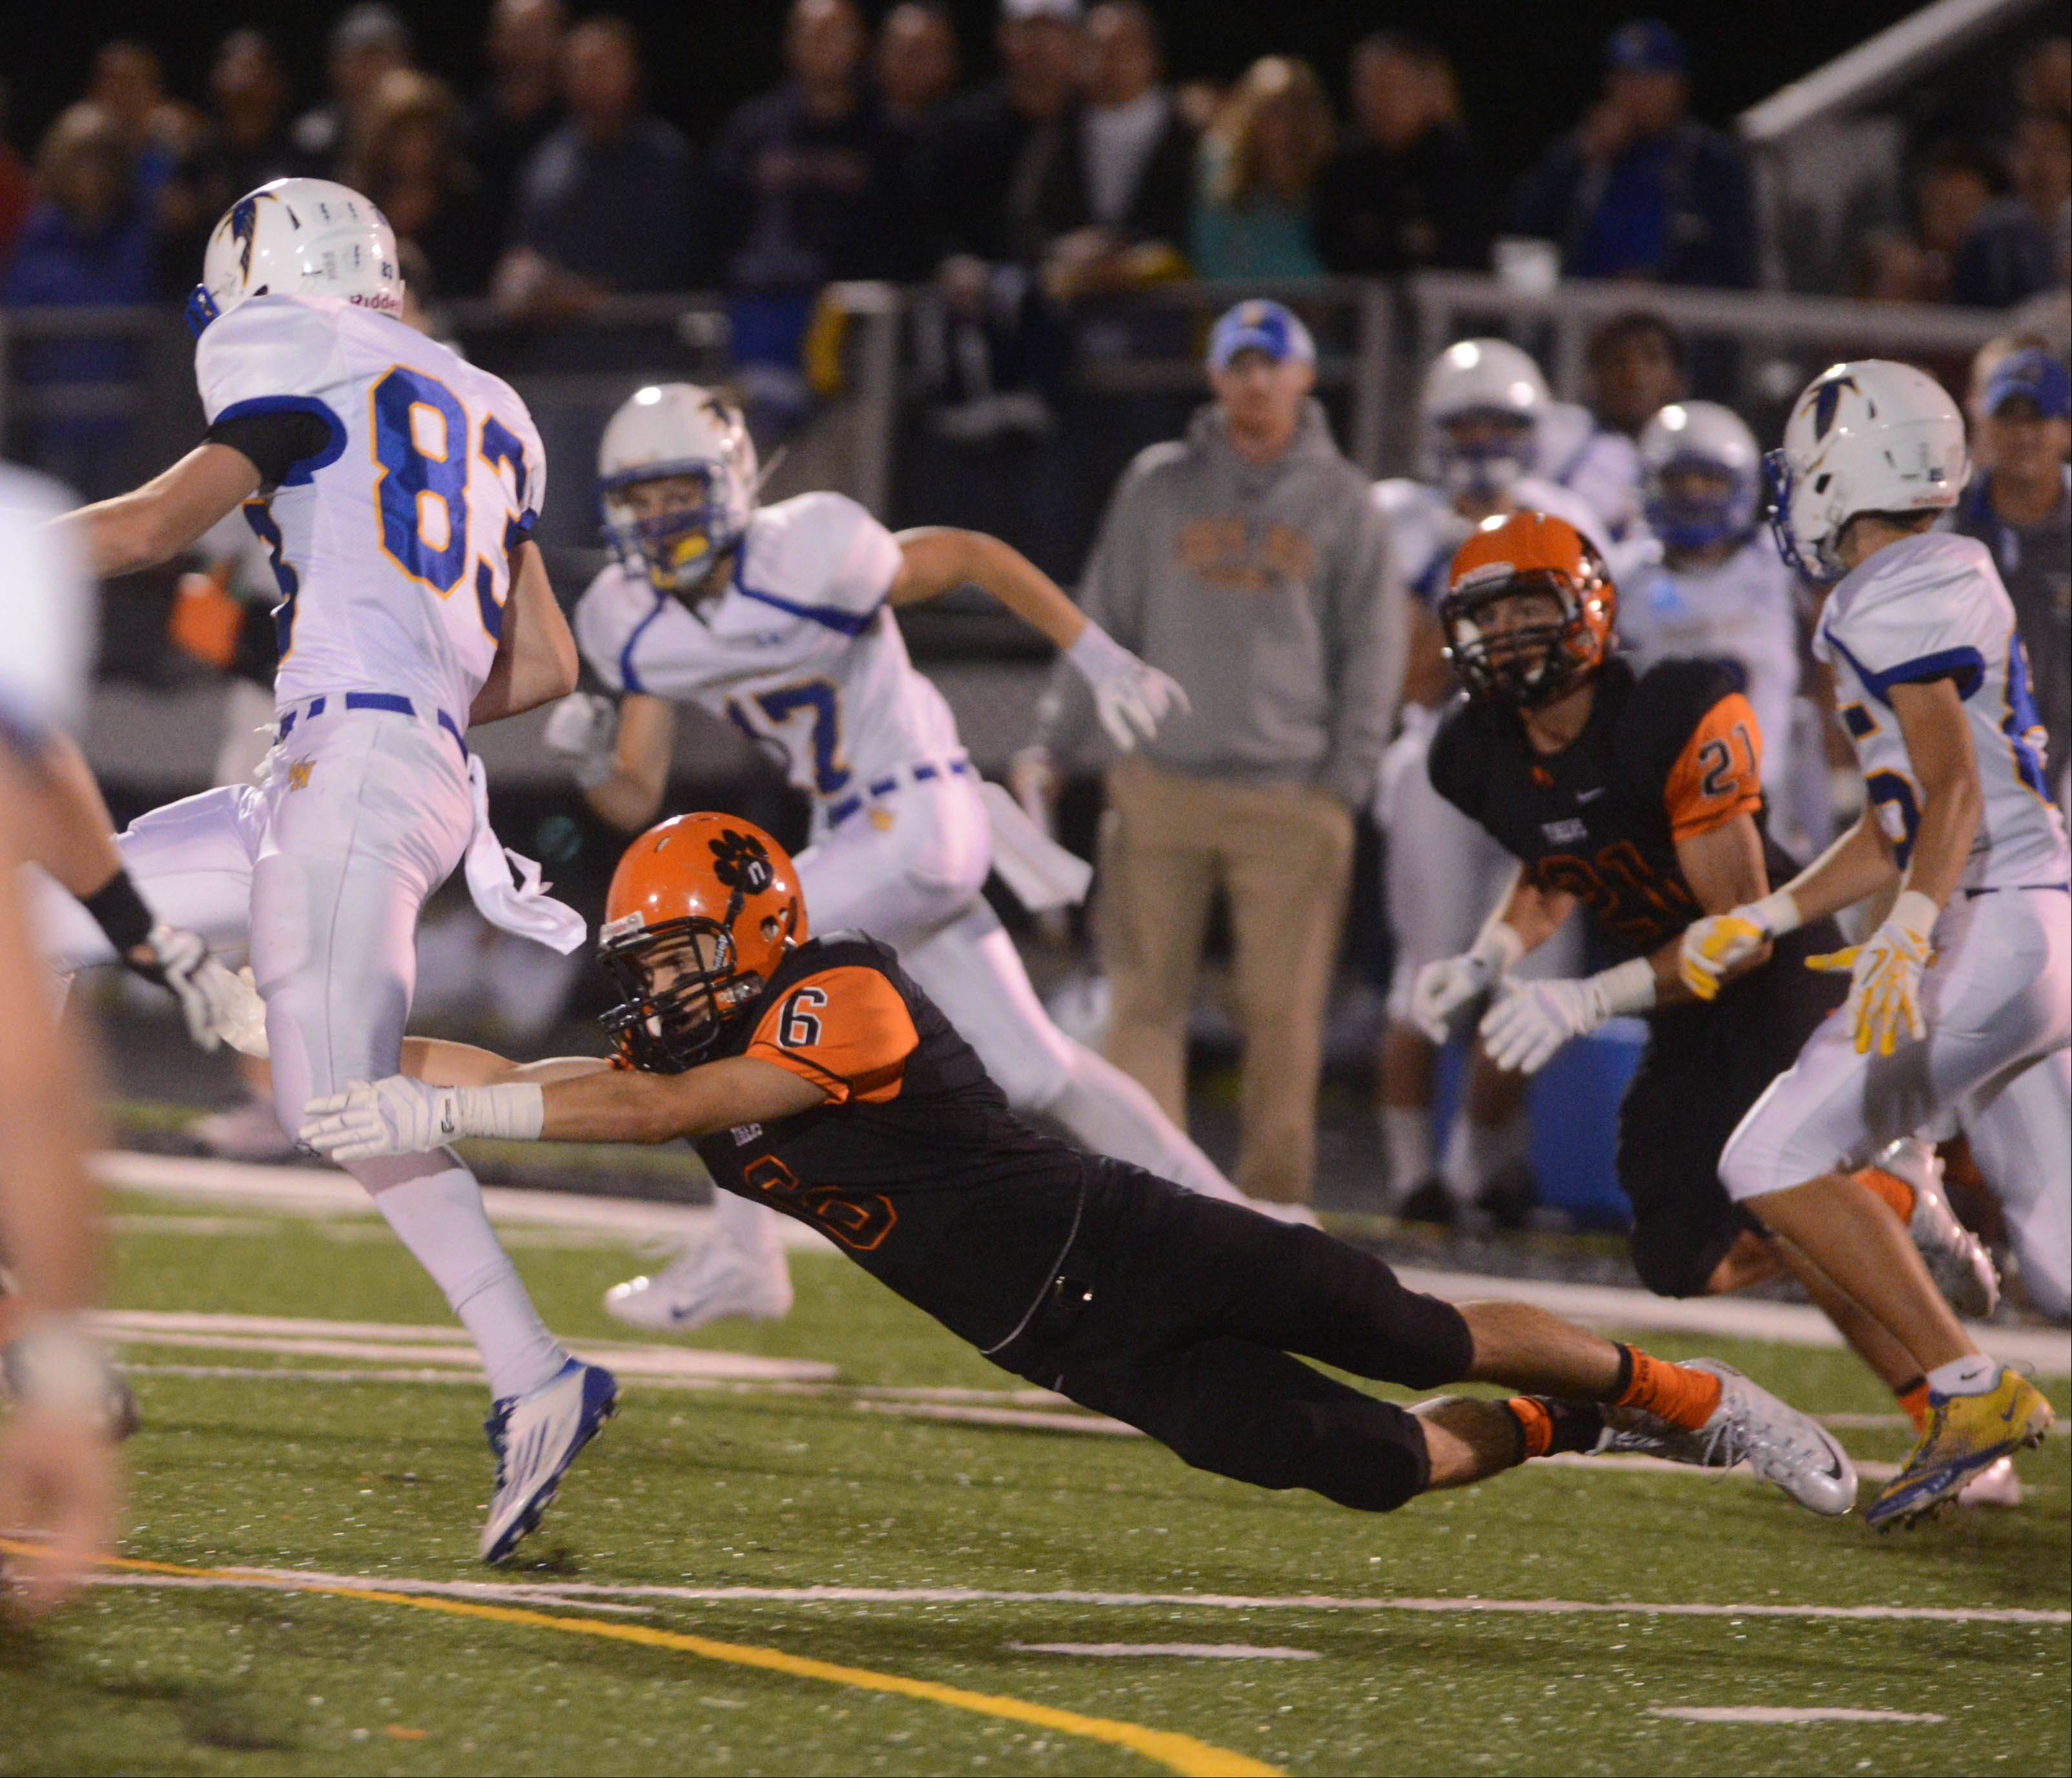 Dan Knight of Wheaton North is pulled down by a diving Mike Cerone of Wheaton Warrenville South on Friday.